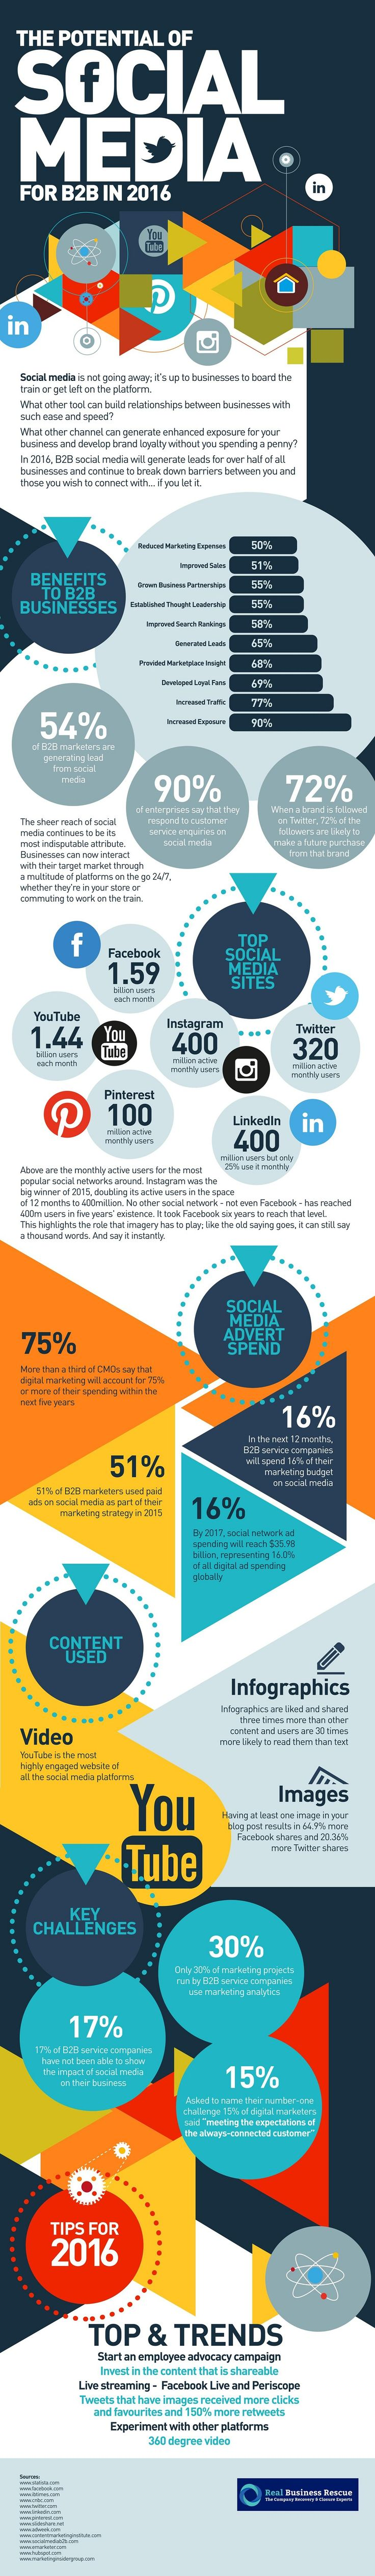 https://social-media-strategy-template.blogspot.com/ Think social medias only for B2C brands? Thinkagain. This infographic outlines the opportunities for B2B marketers in social.